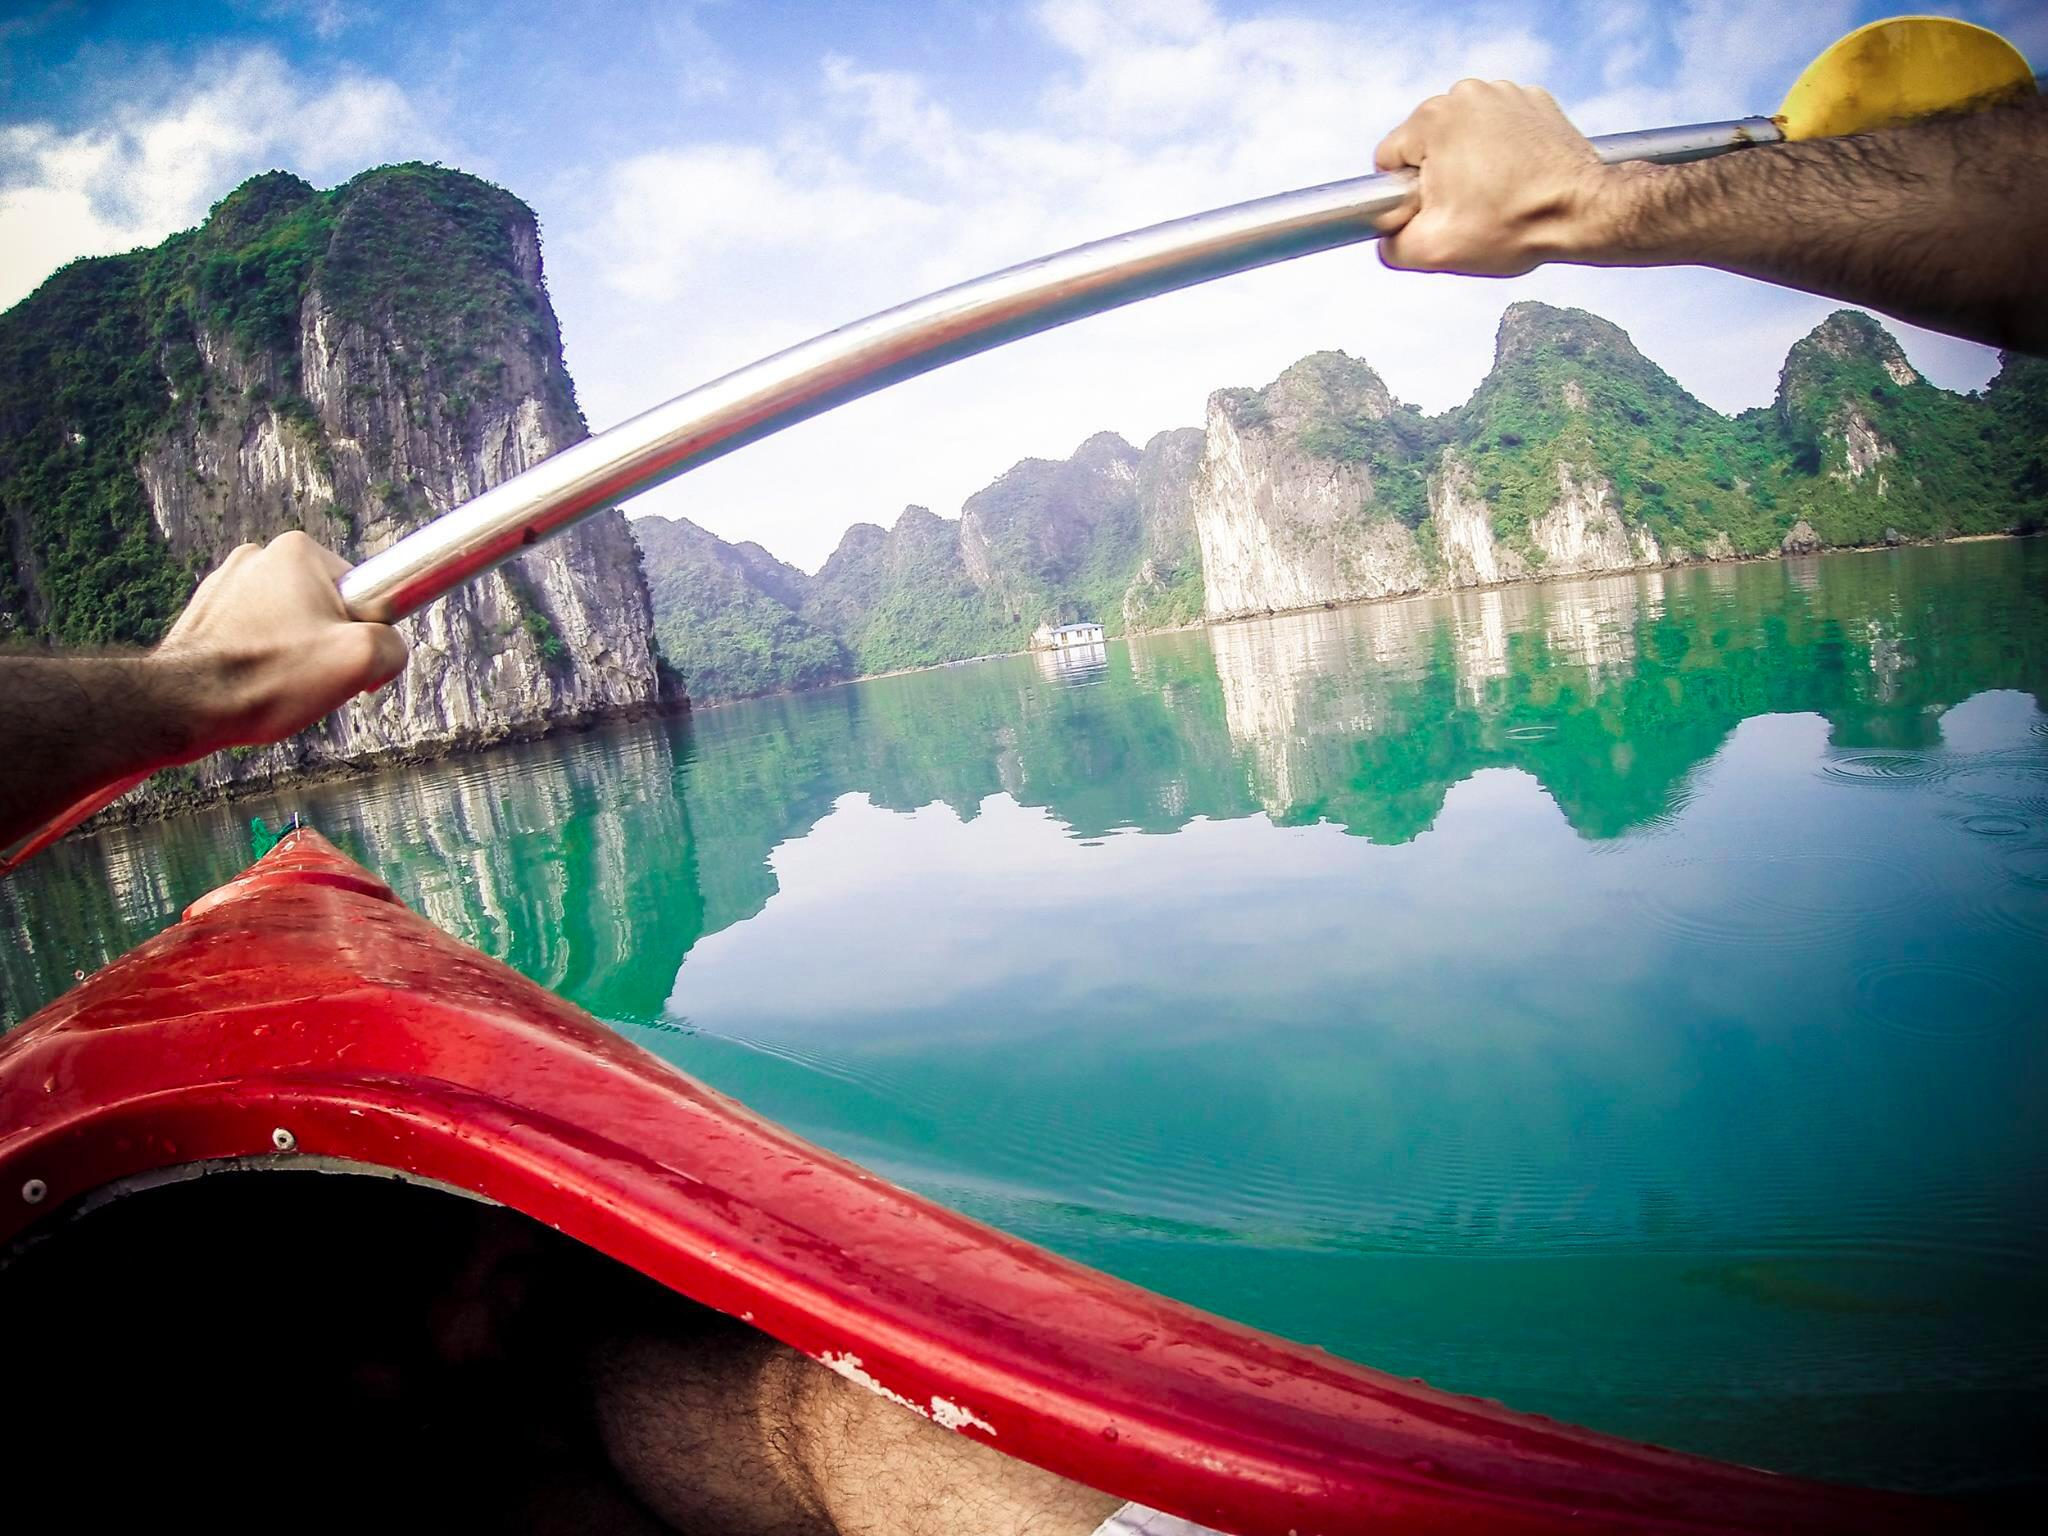 Photo of the Day! @MicheleArdu paddles through Ha Long Bay in Vietnam. http://t.co/5fKPtOhC1Q